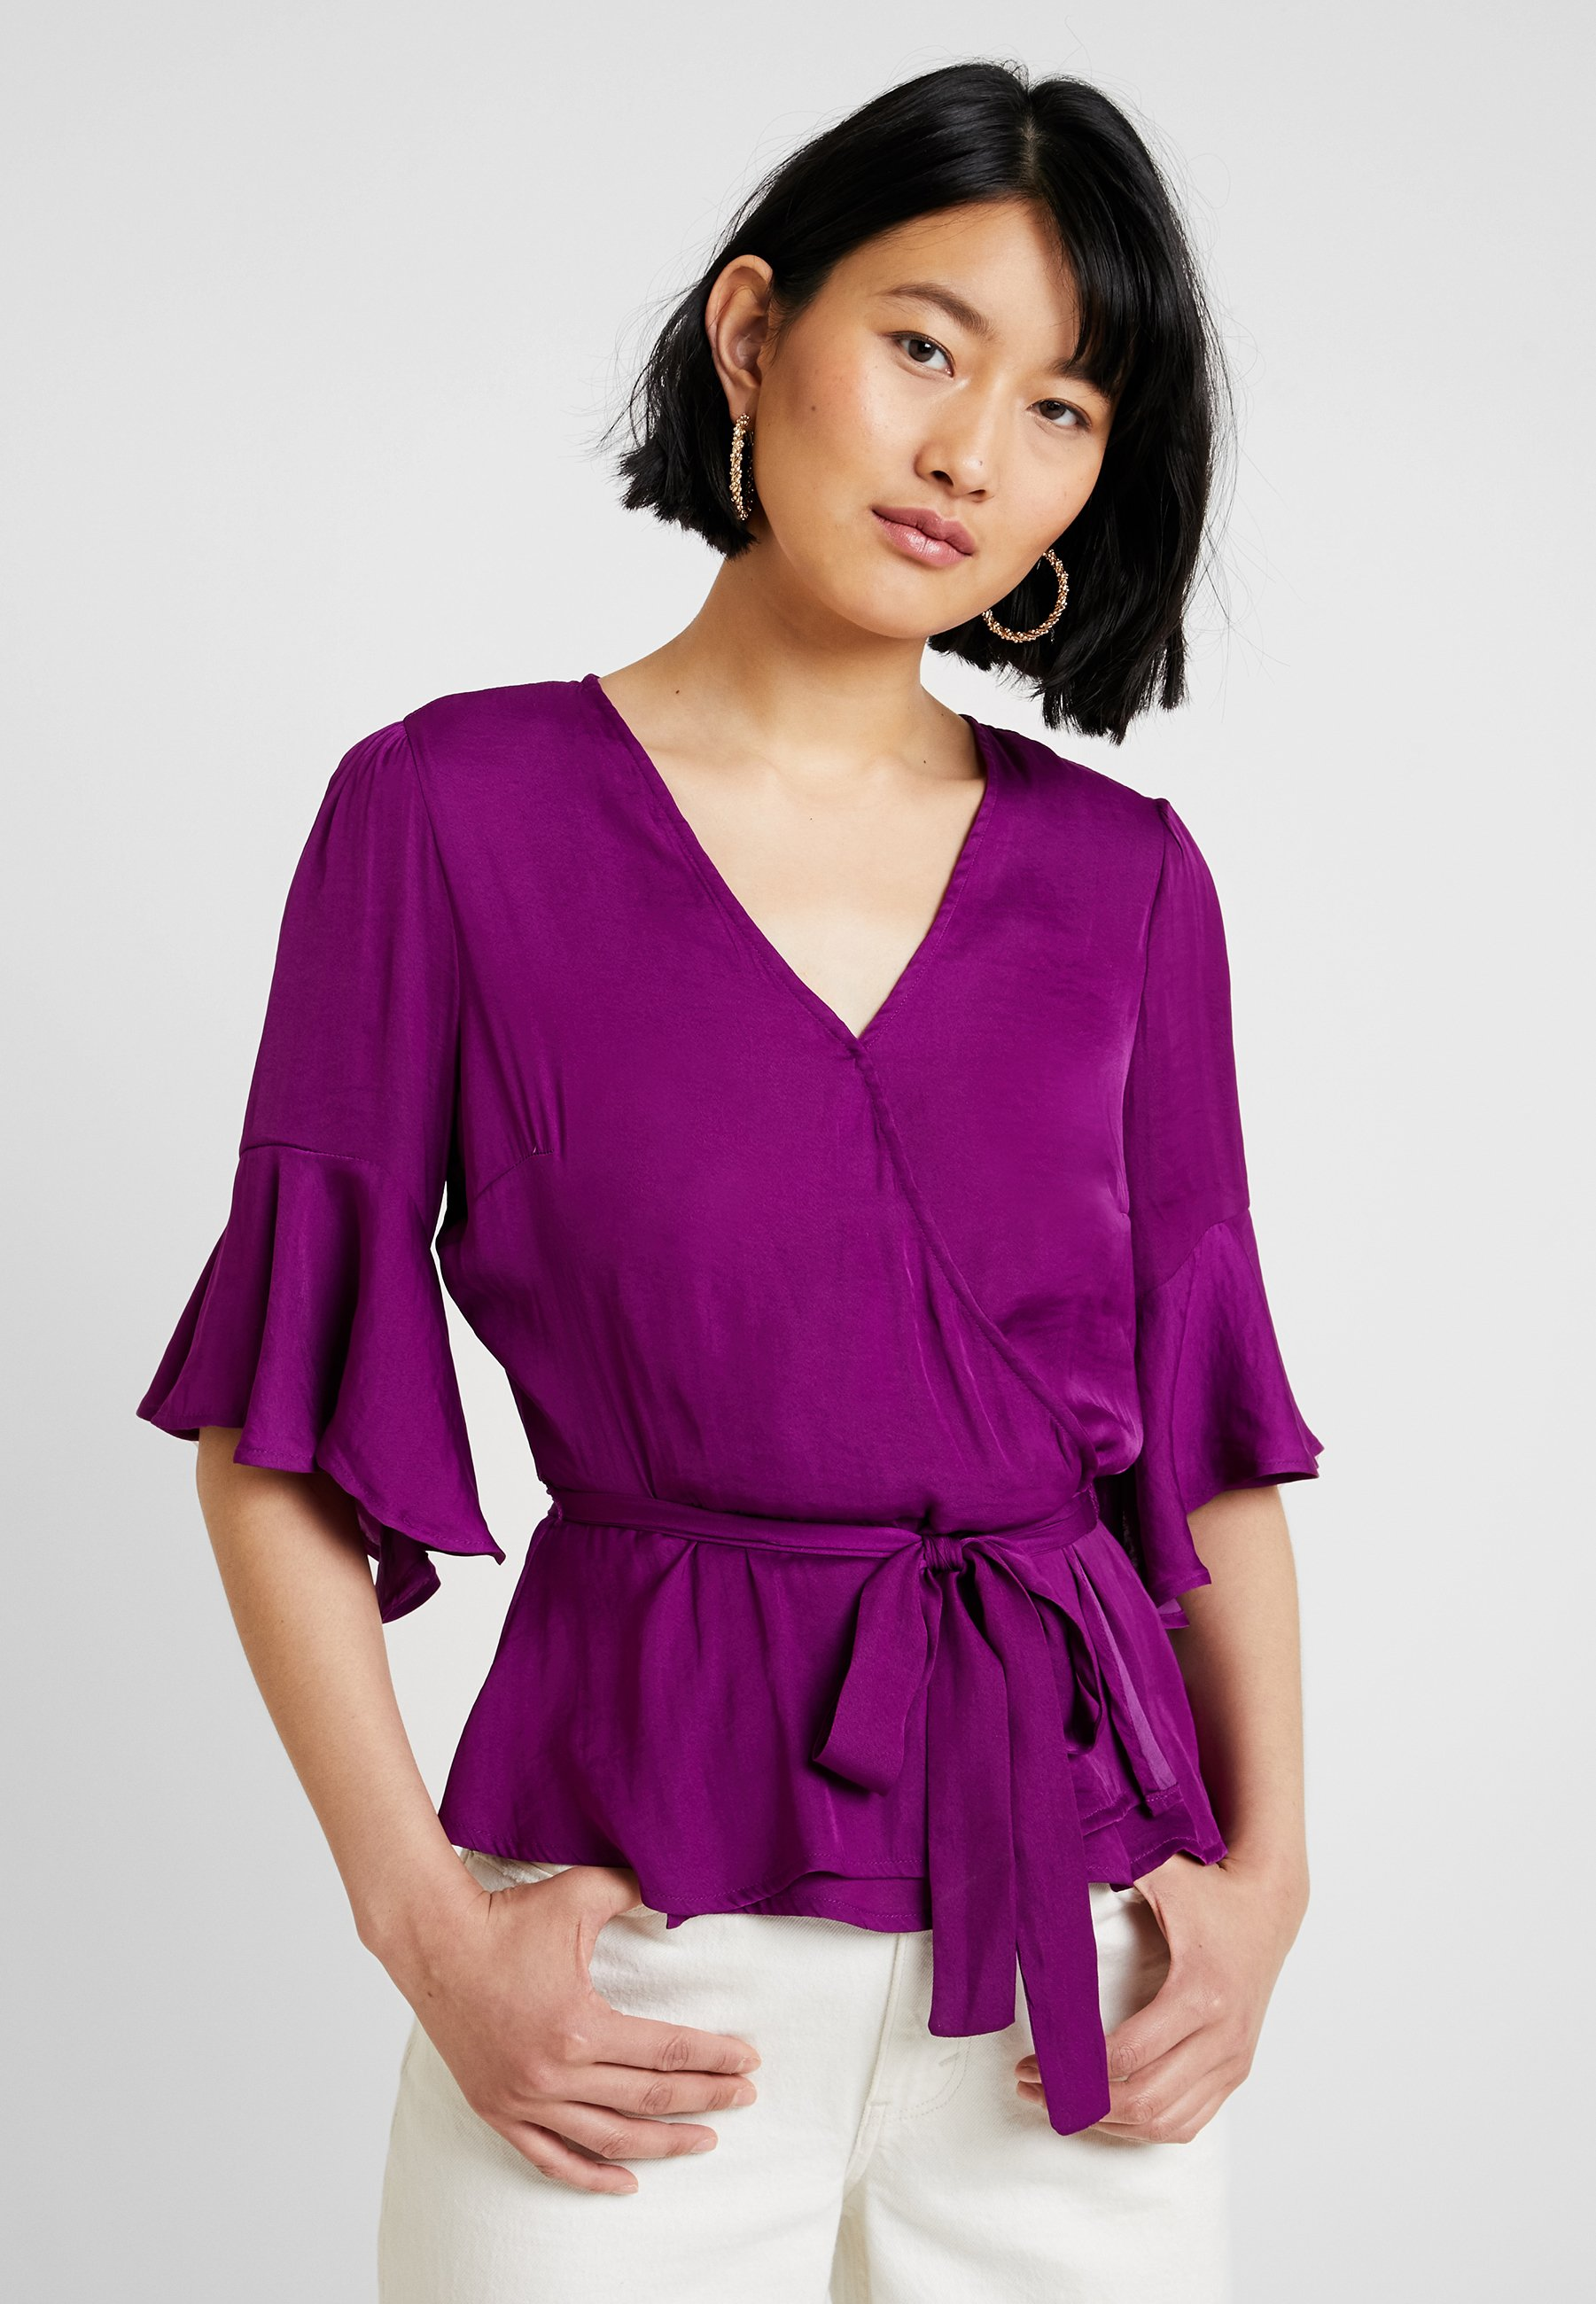 Camuto RUMPLE RUFFLED SLEEVE WRAPBlouse magenta BELTED Vince ELBOW rich EY9H2IDW